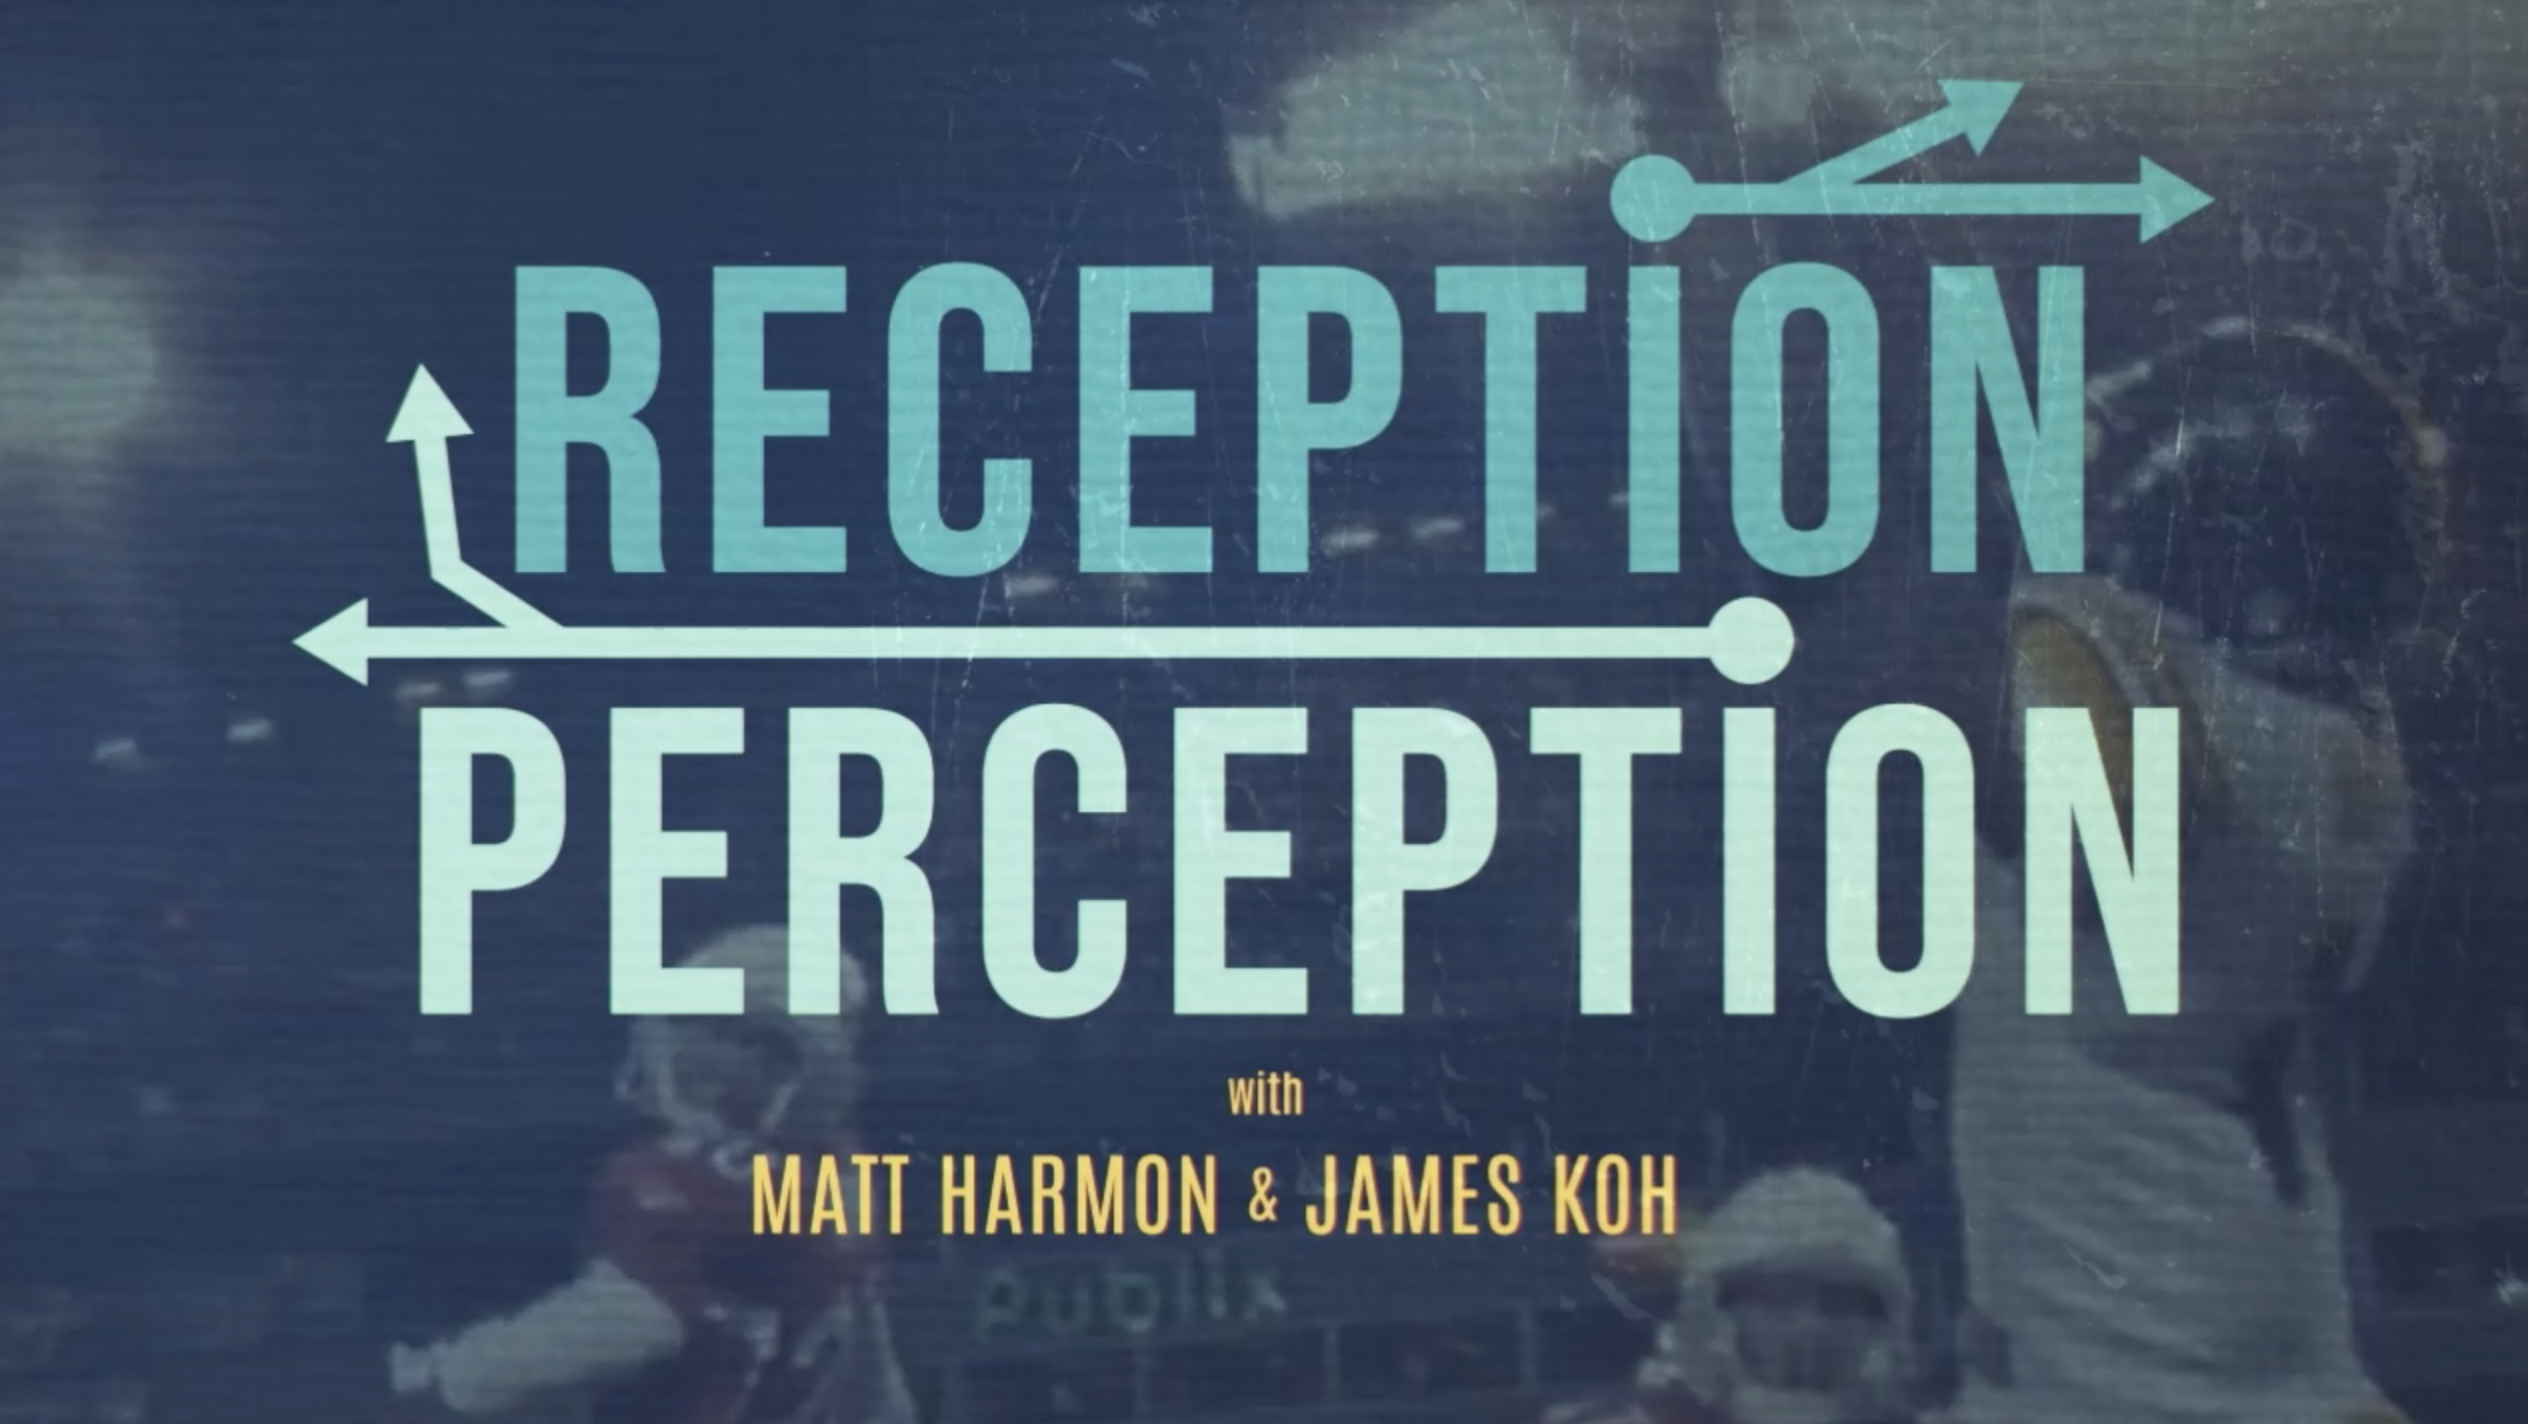 Reception Perception Show Episode 7: Is Diontae Johnson an emerging superstar?